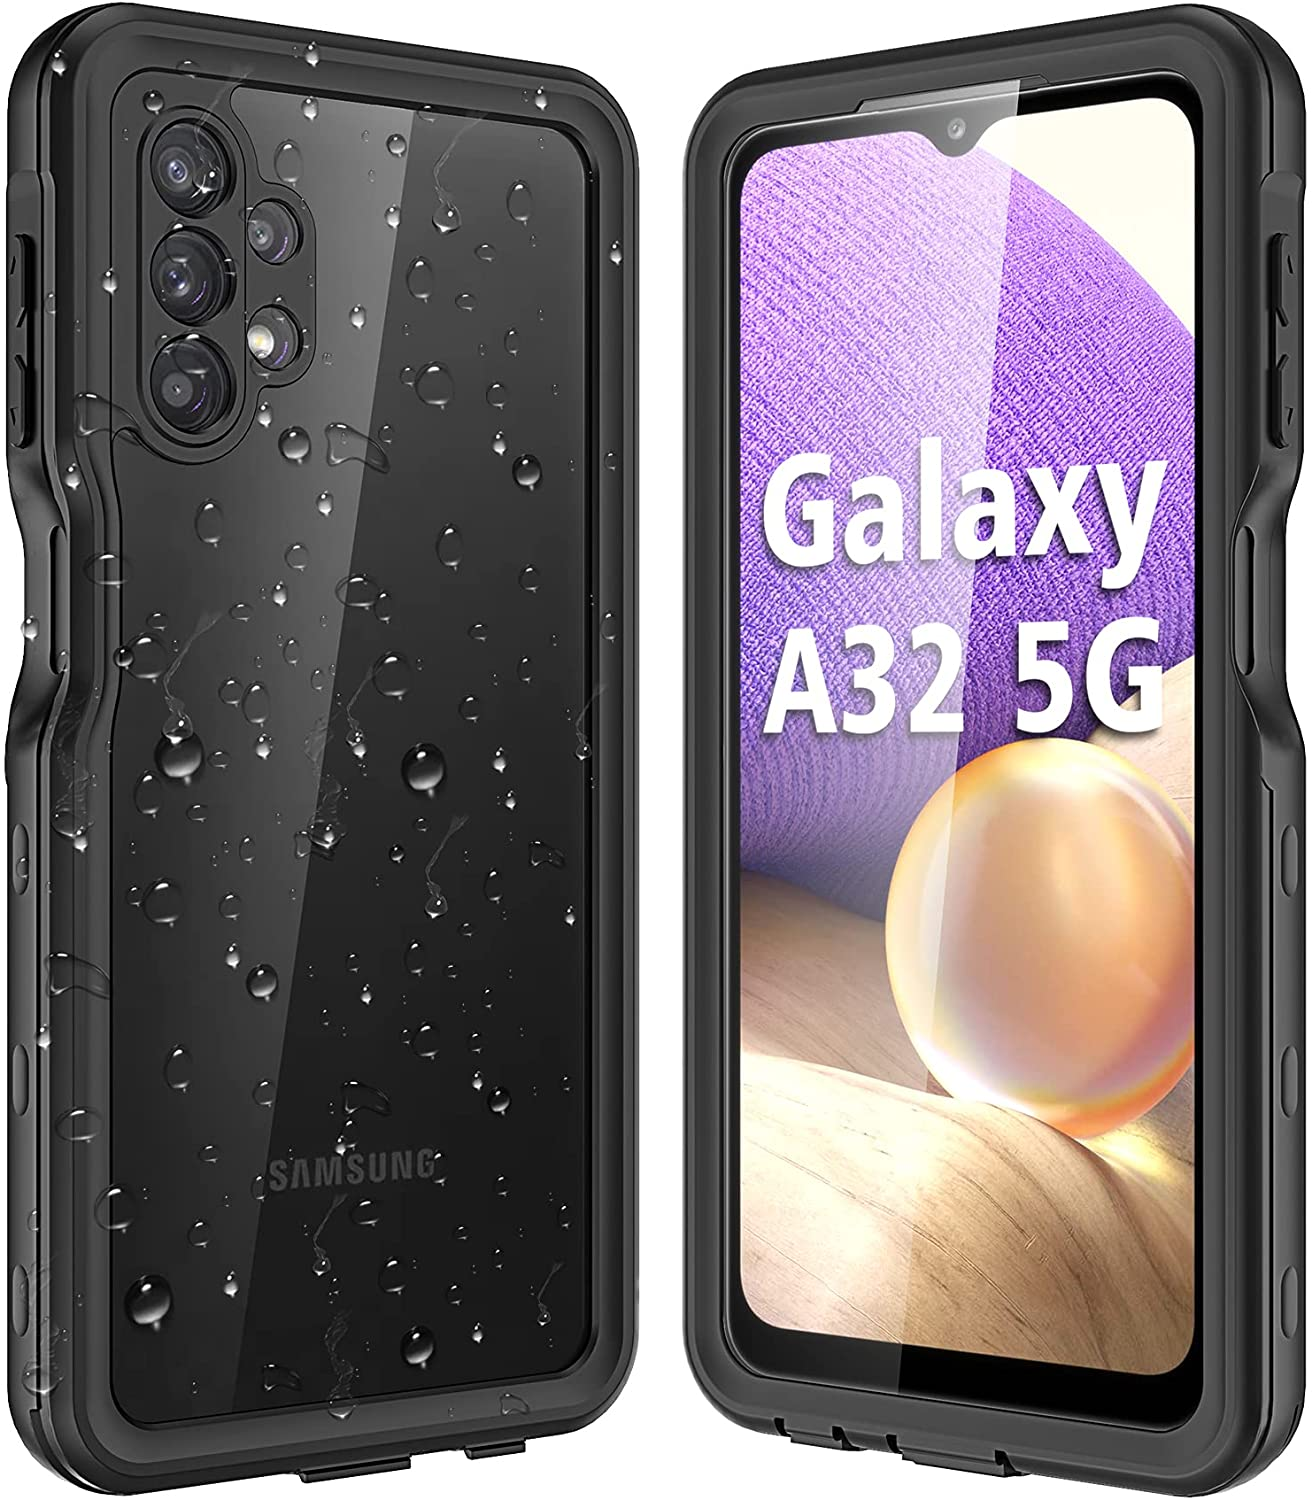 OUCAM for Samsung Galaxy A32 5G Case with Built in Screen Protector Waterproof Shockproof Dustproof Dropproof Phone Case for Galaxy A32 5G Full Body Protection Samsung A32 5g Case (Black)